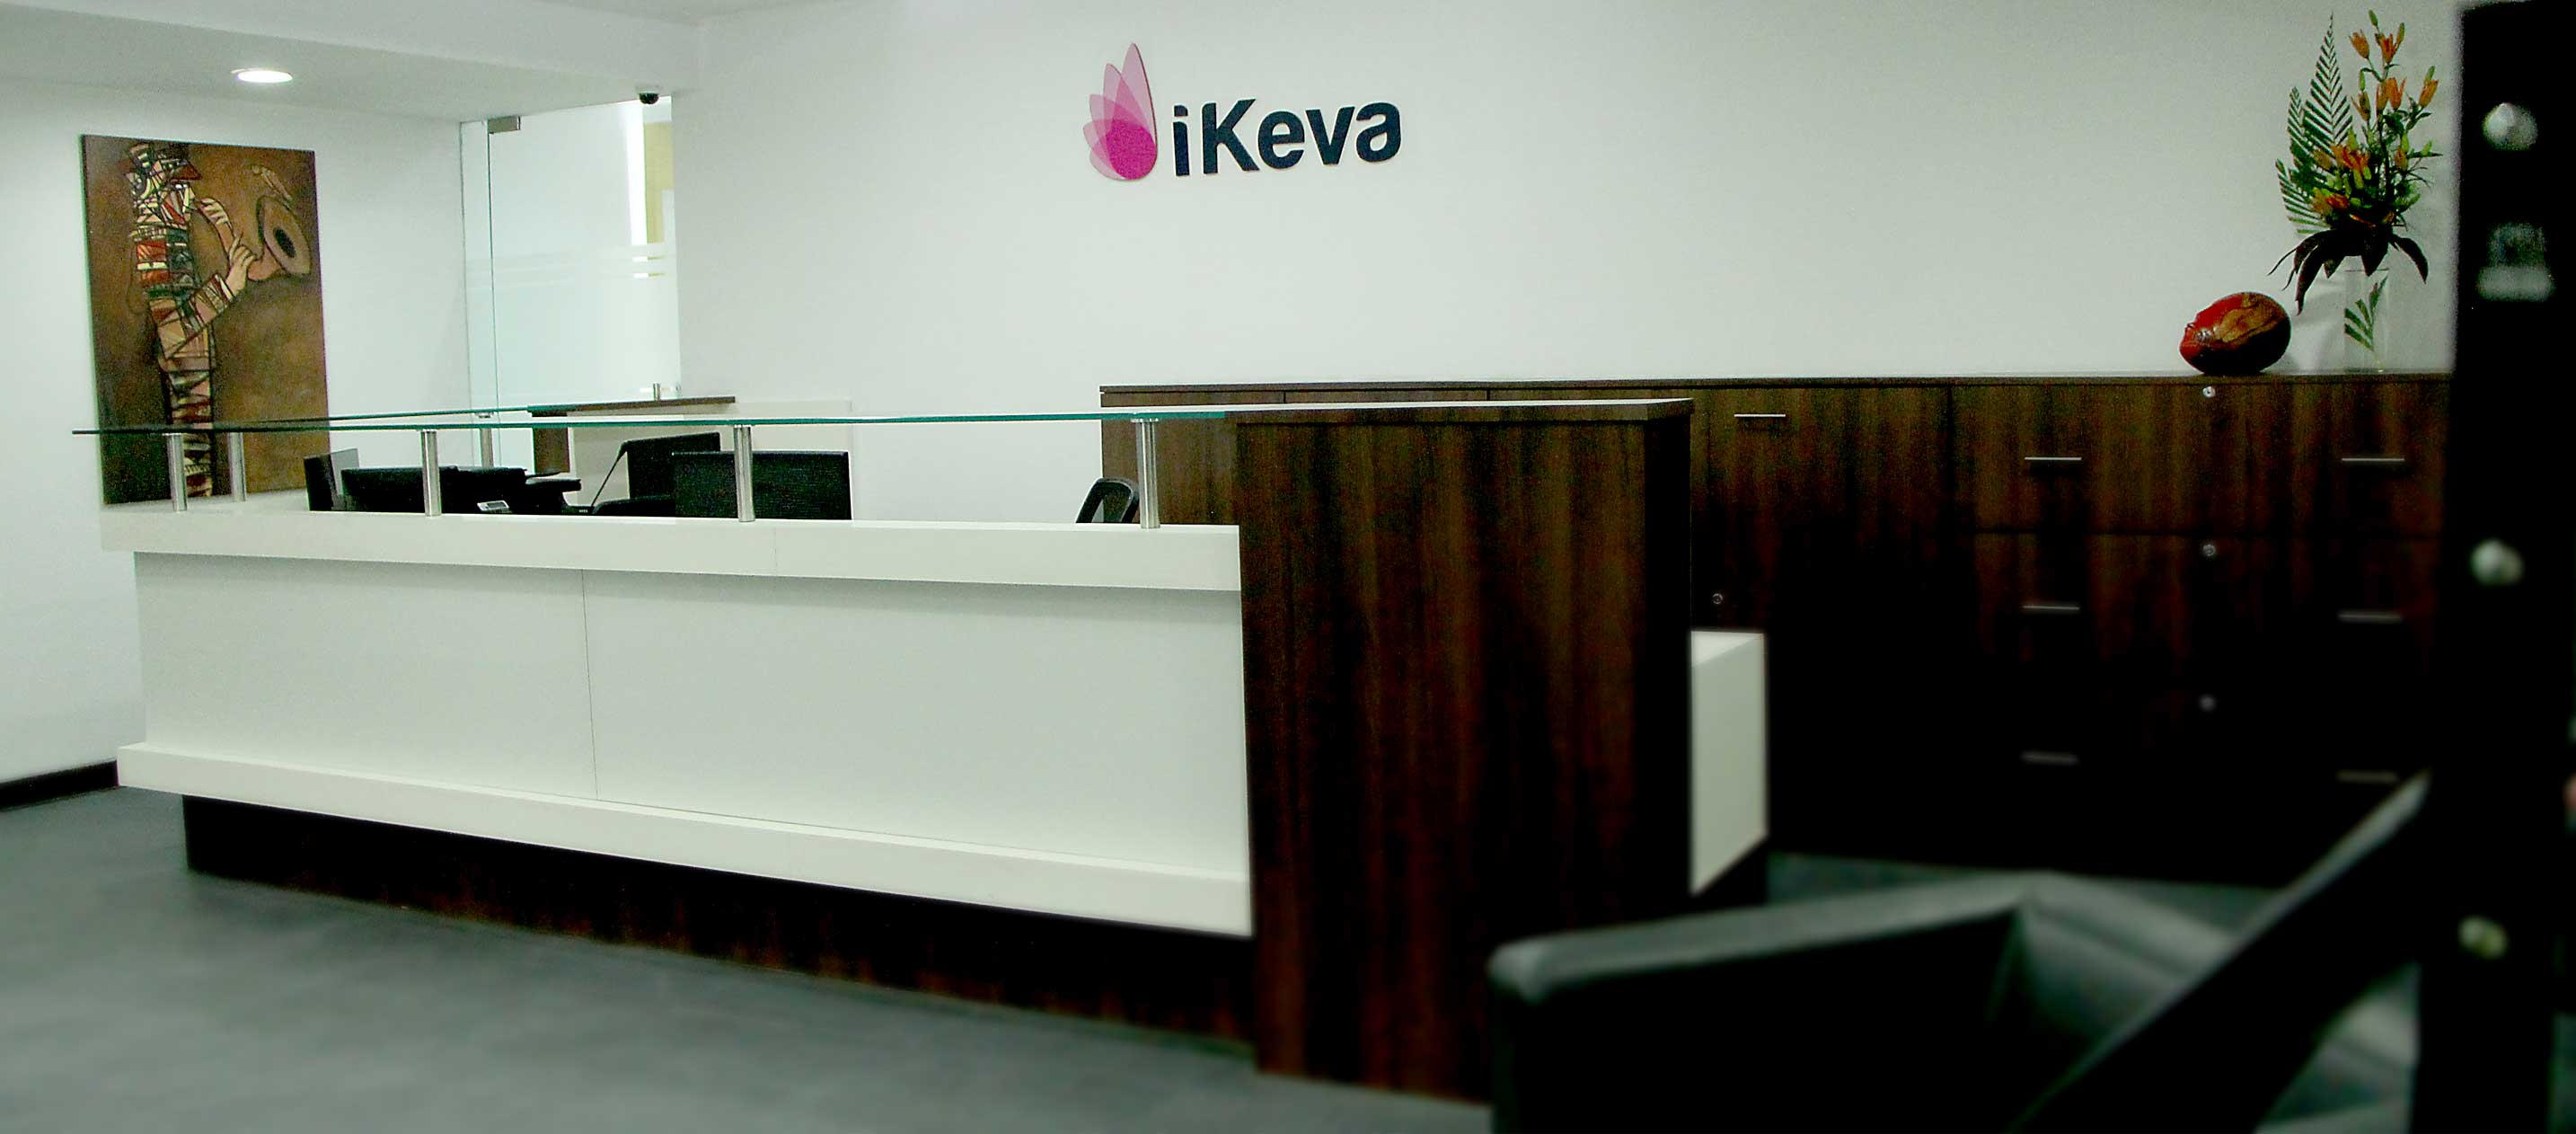 iKeva Hyderabad Banjara Hills Kowrk office reception